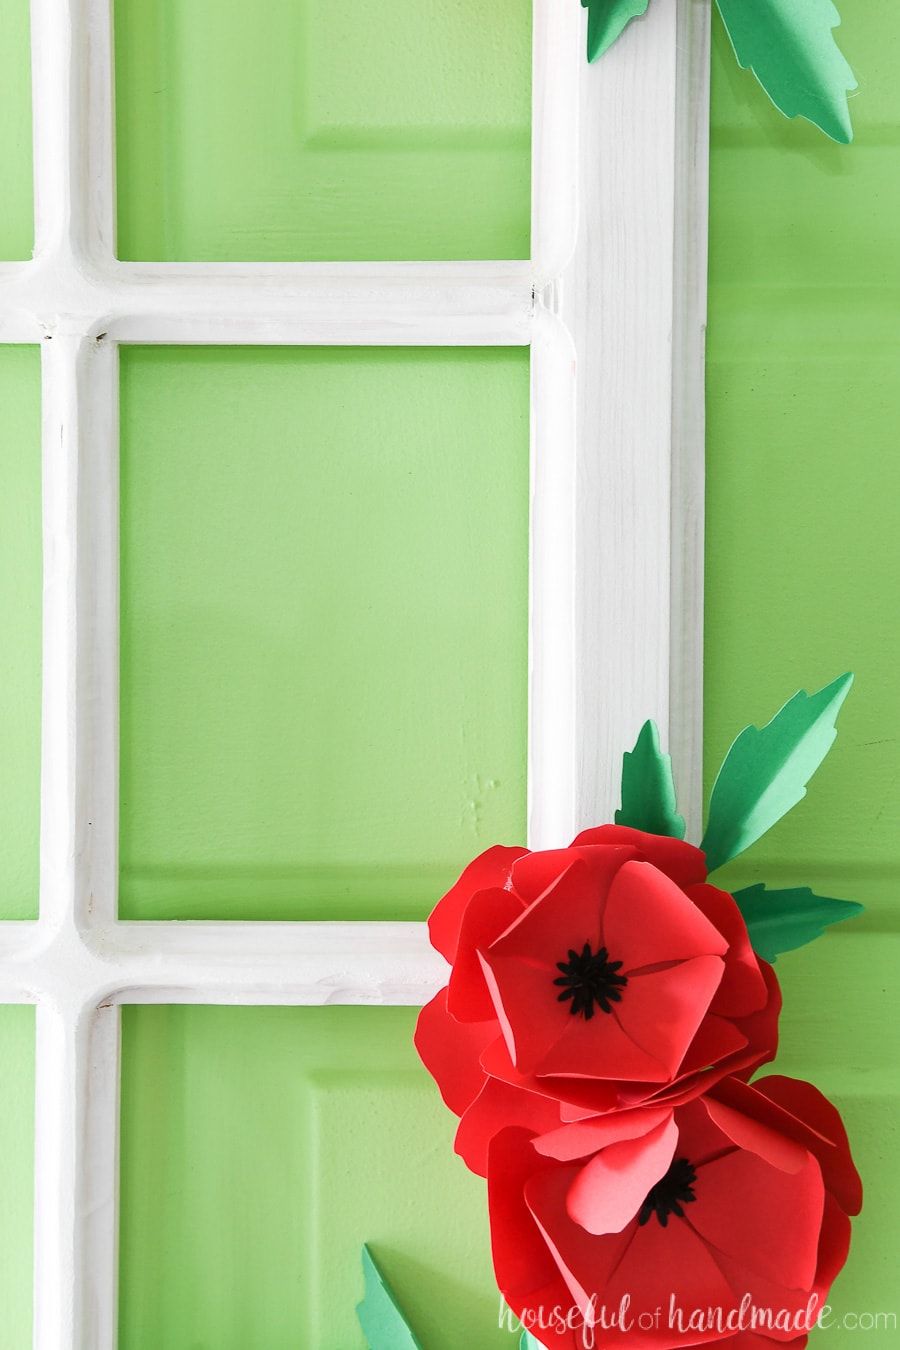 Close up view of the routed edges of the window frame wreath and the paper flowers.